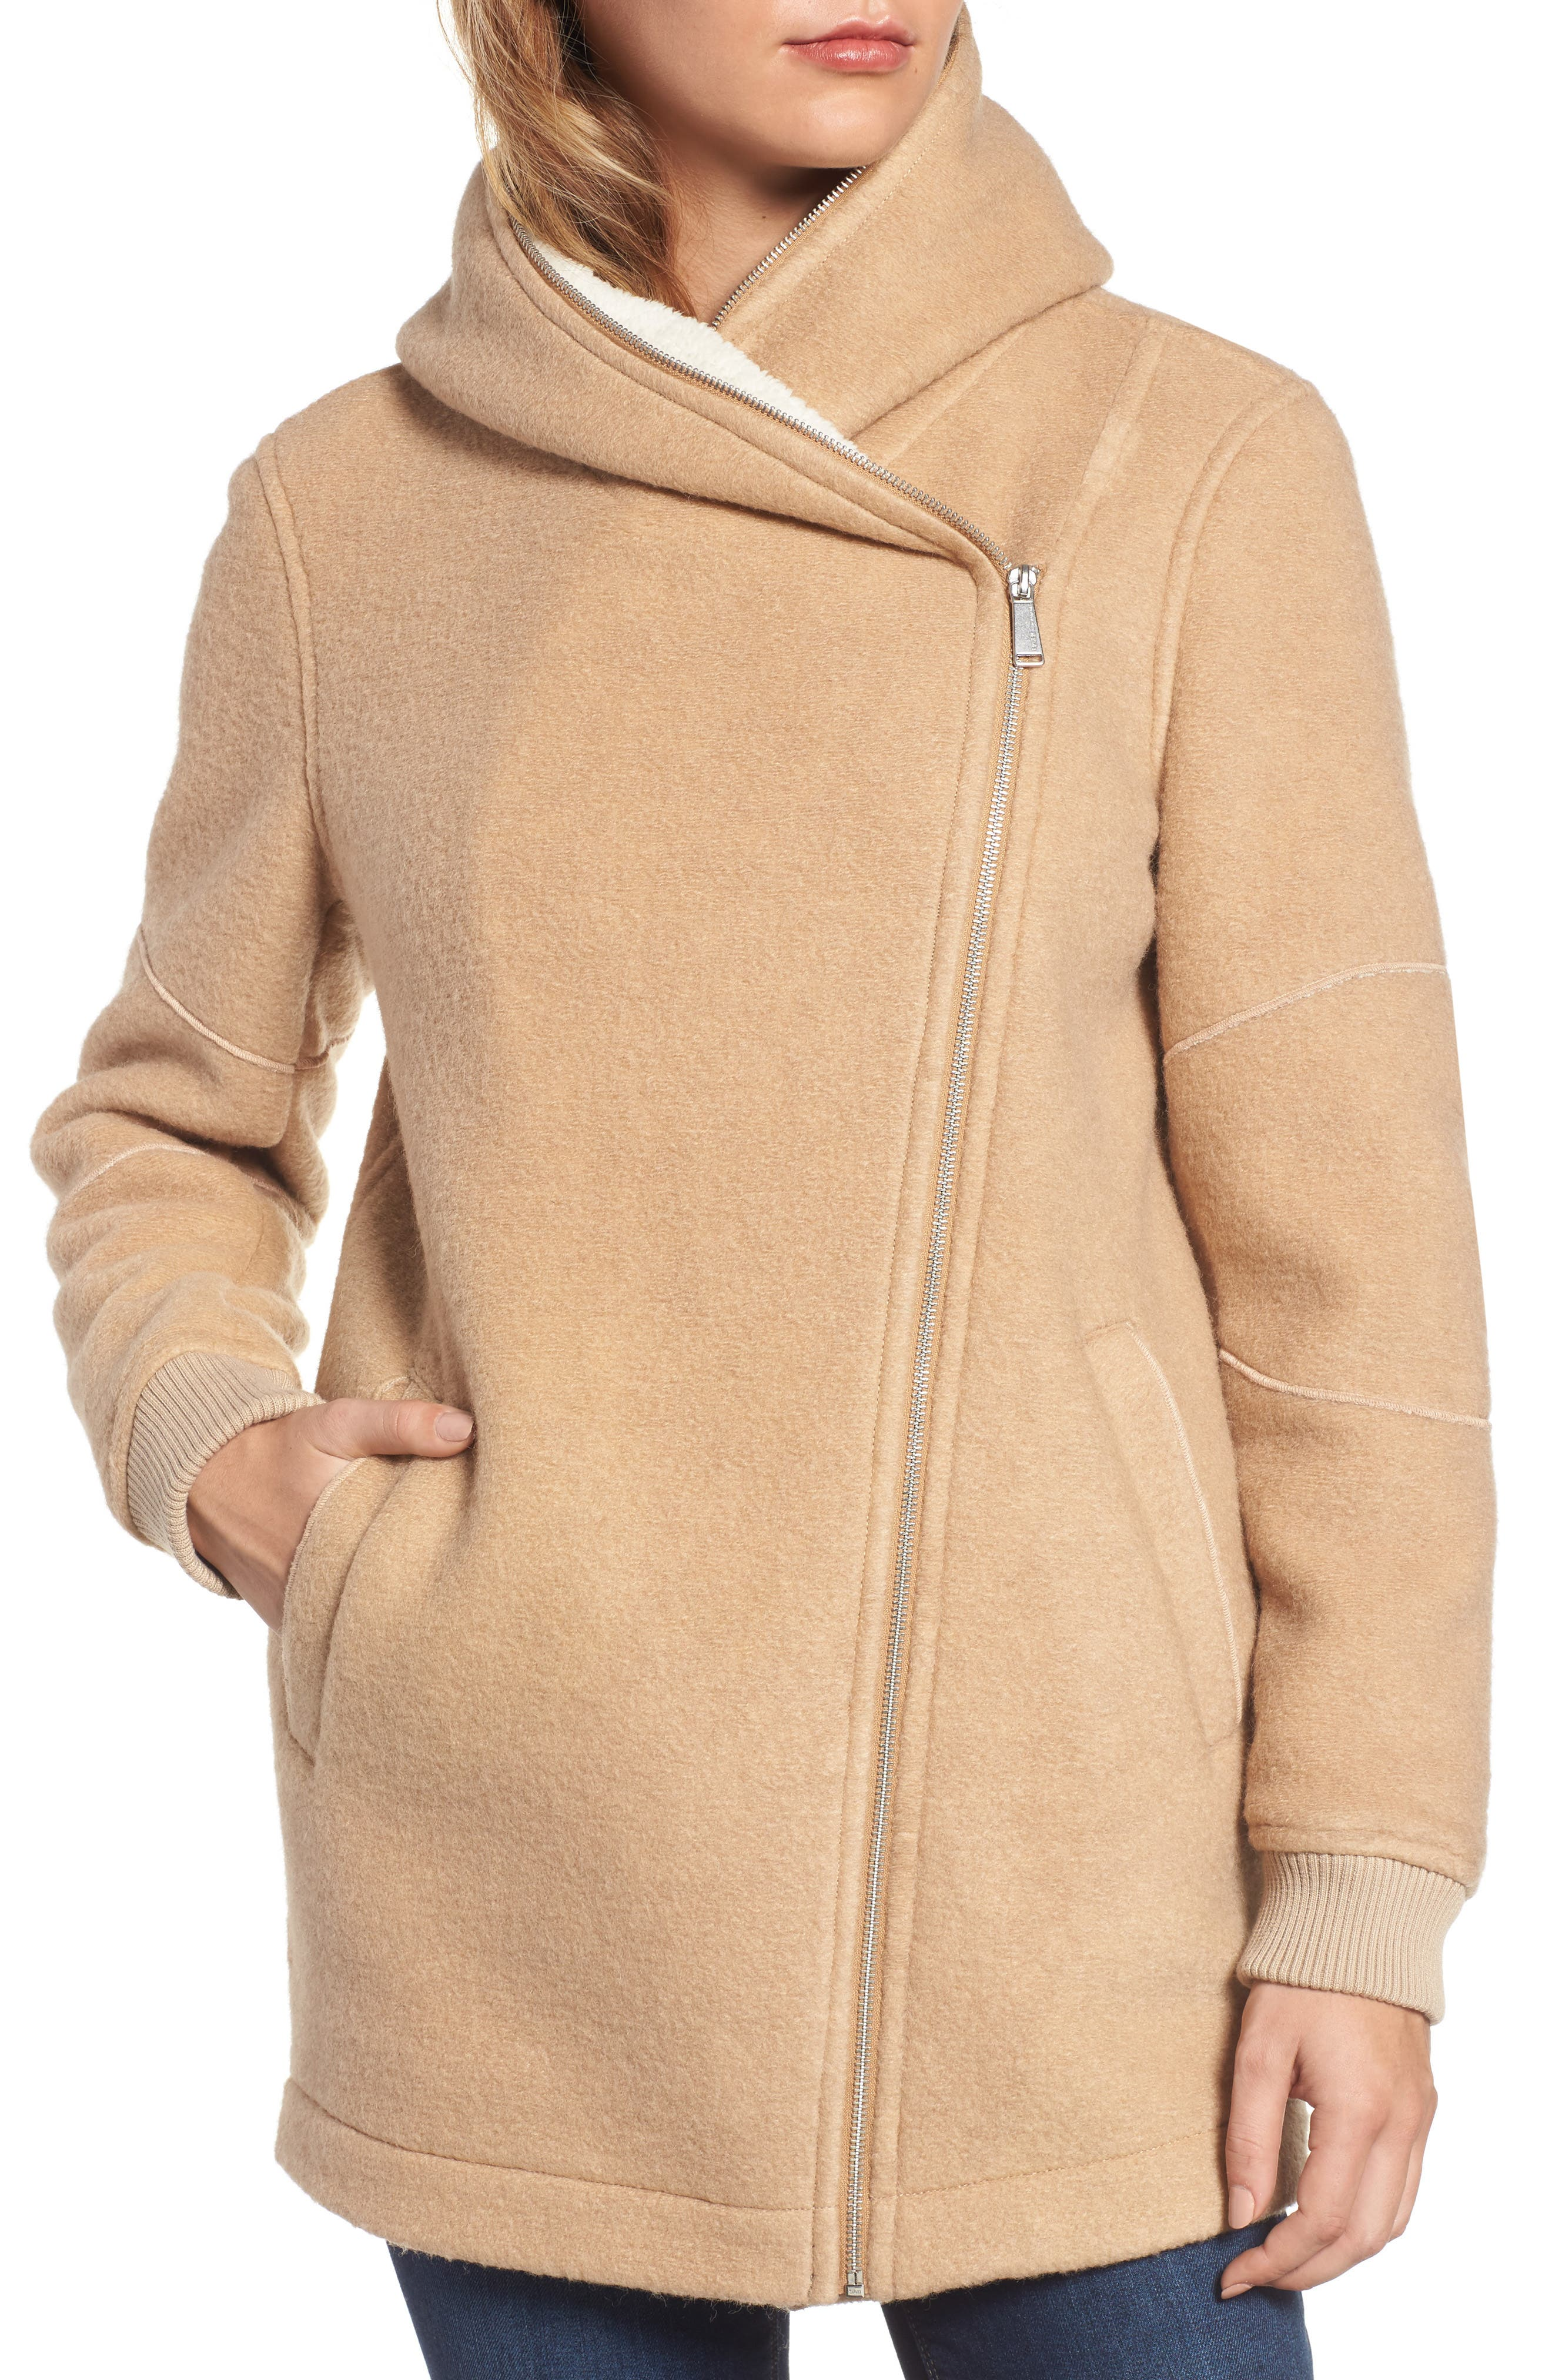 Asymmetrical Hooded Wool Blend Coat,                             Alternate thumbnail 4, color,                             280